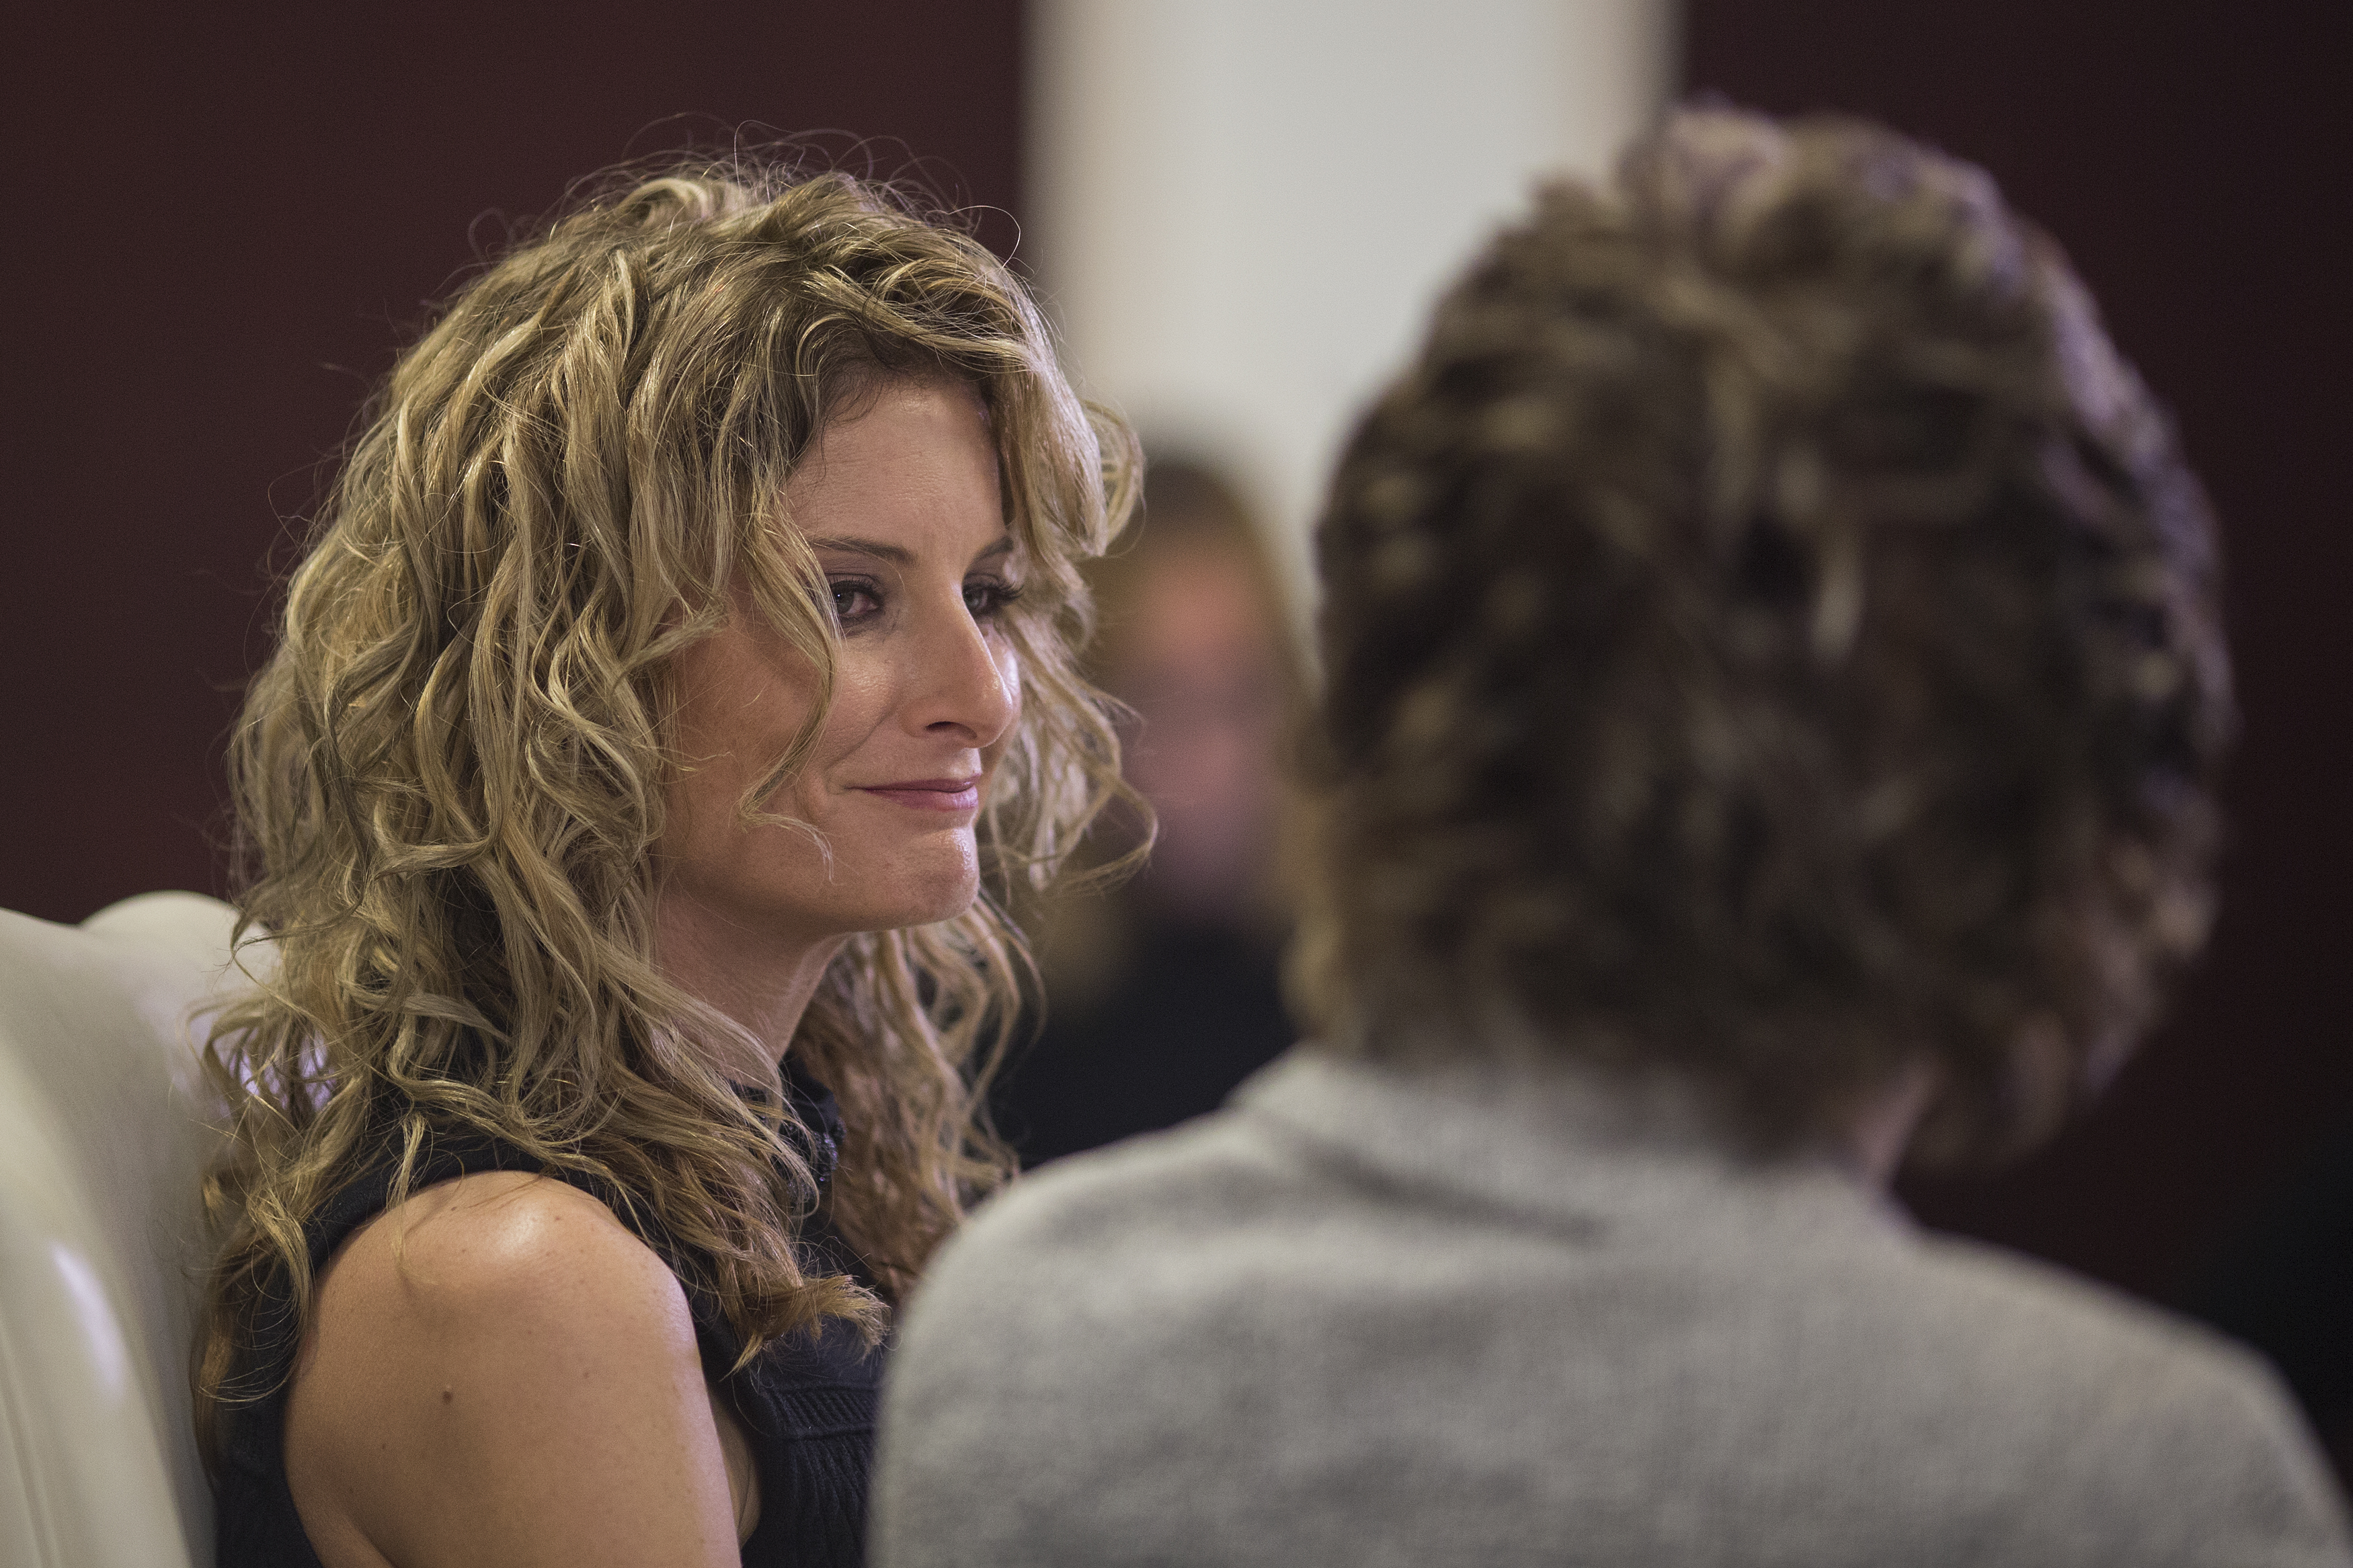 Summer Zervos attends a press conference on Jan. 17, 2017. (David McNew)